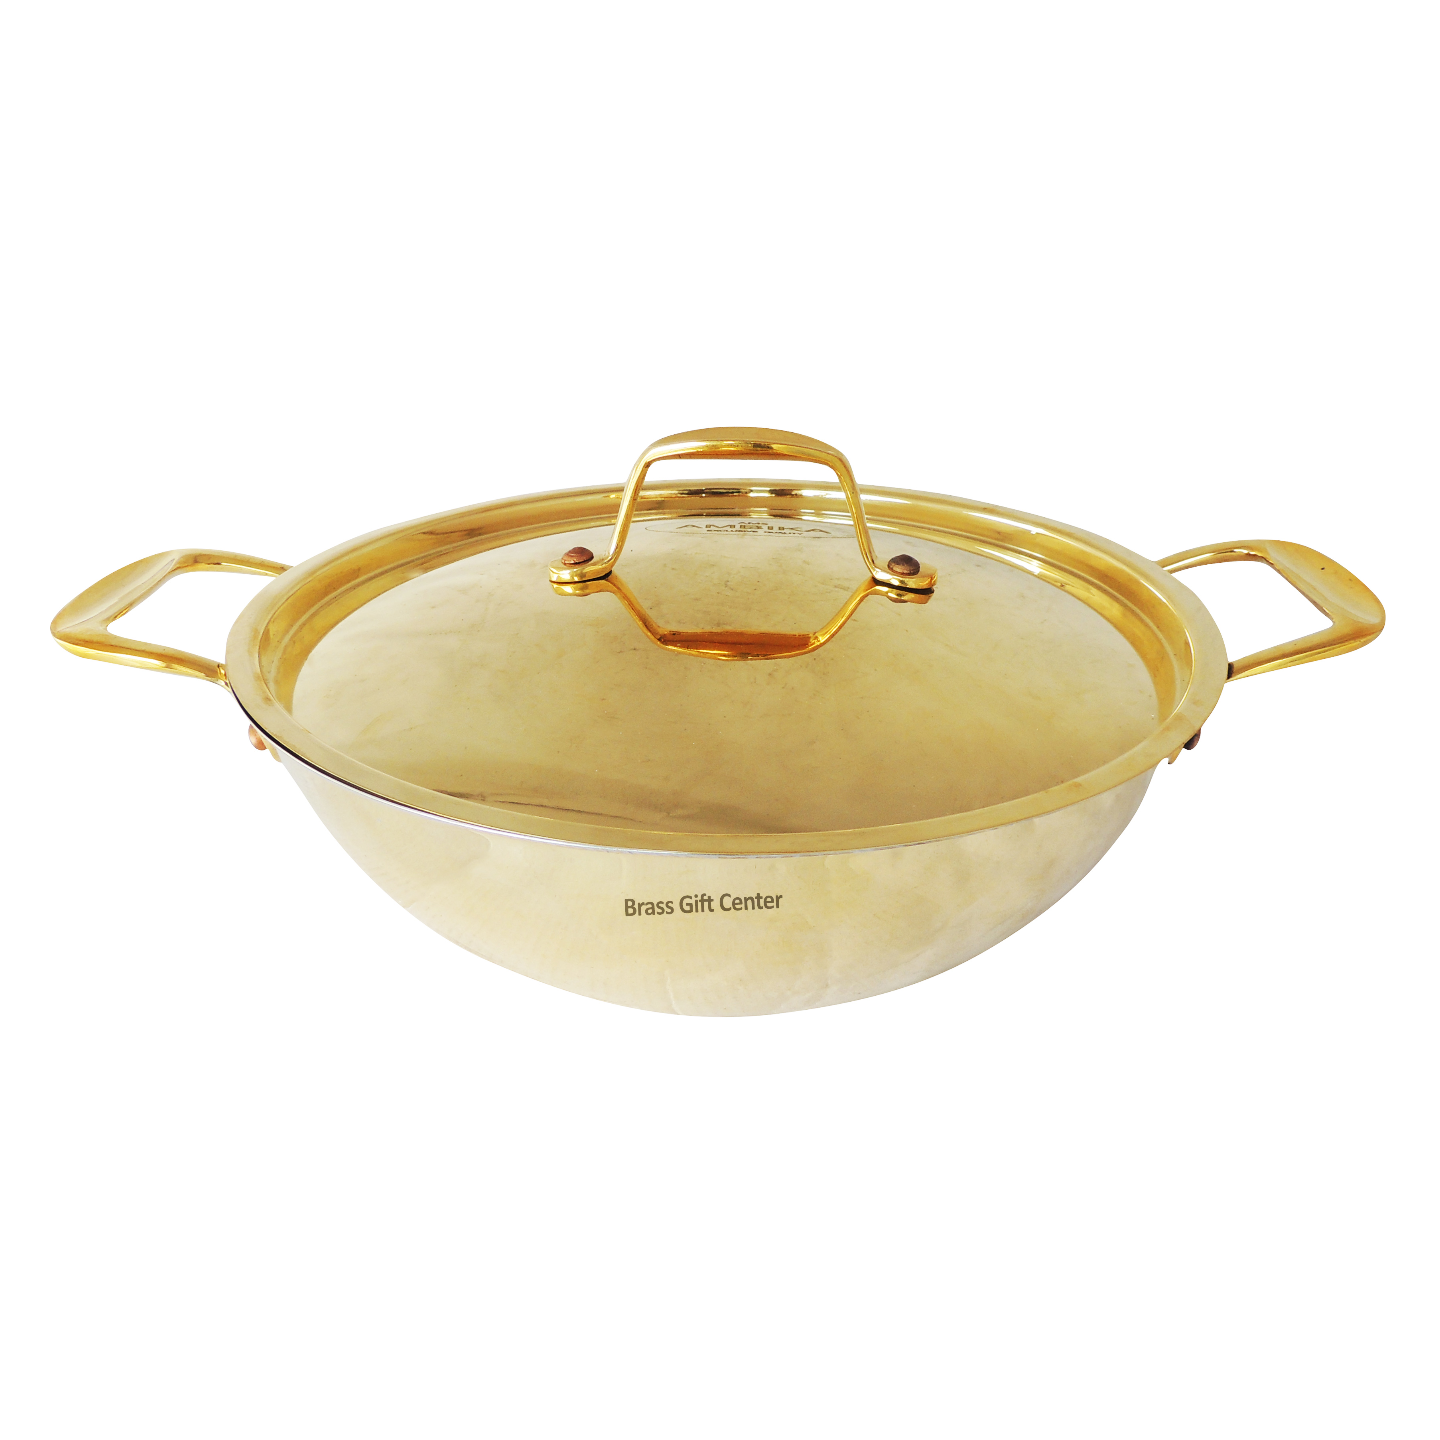 Brass Kadai With Cover No. 1, 13.7 Inch Z473 A